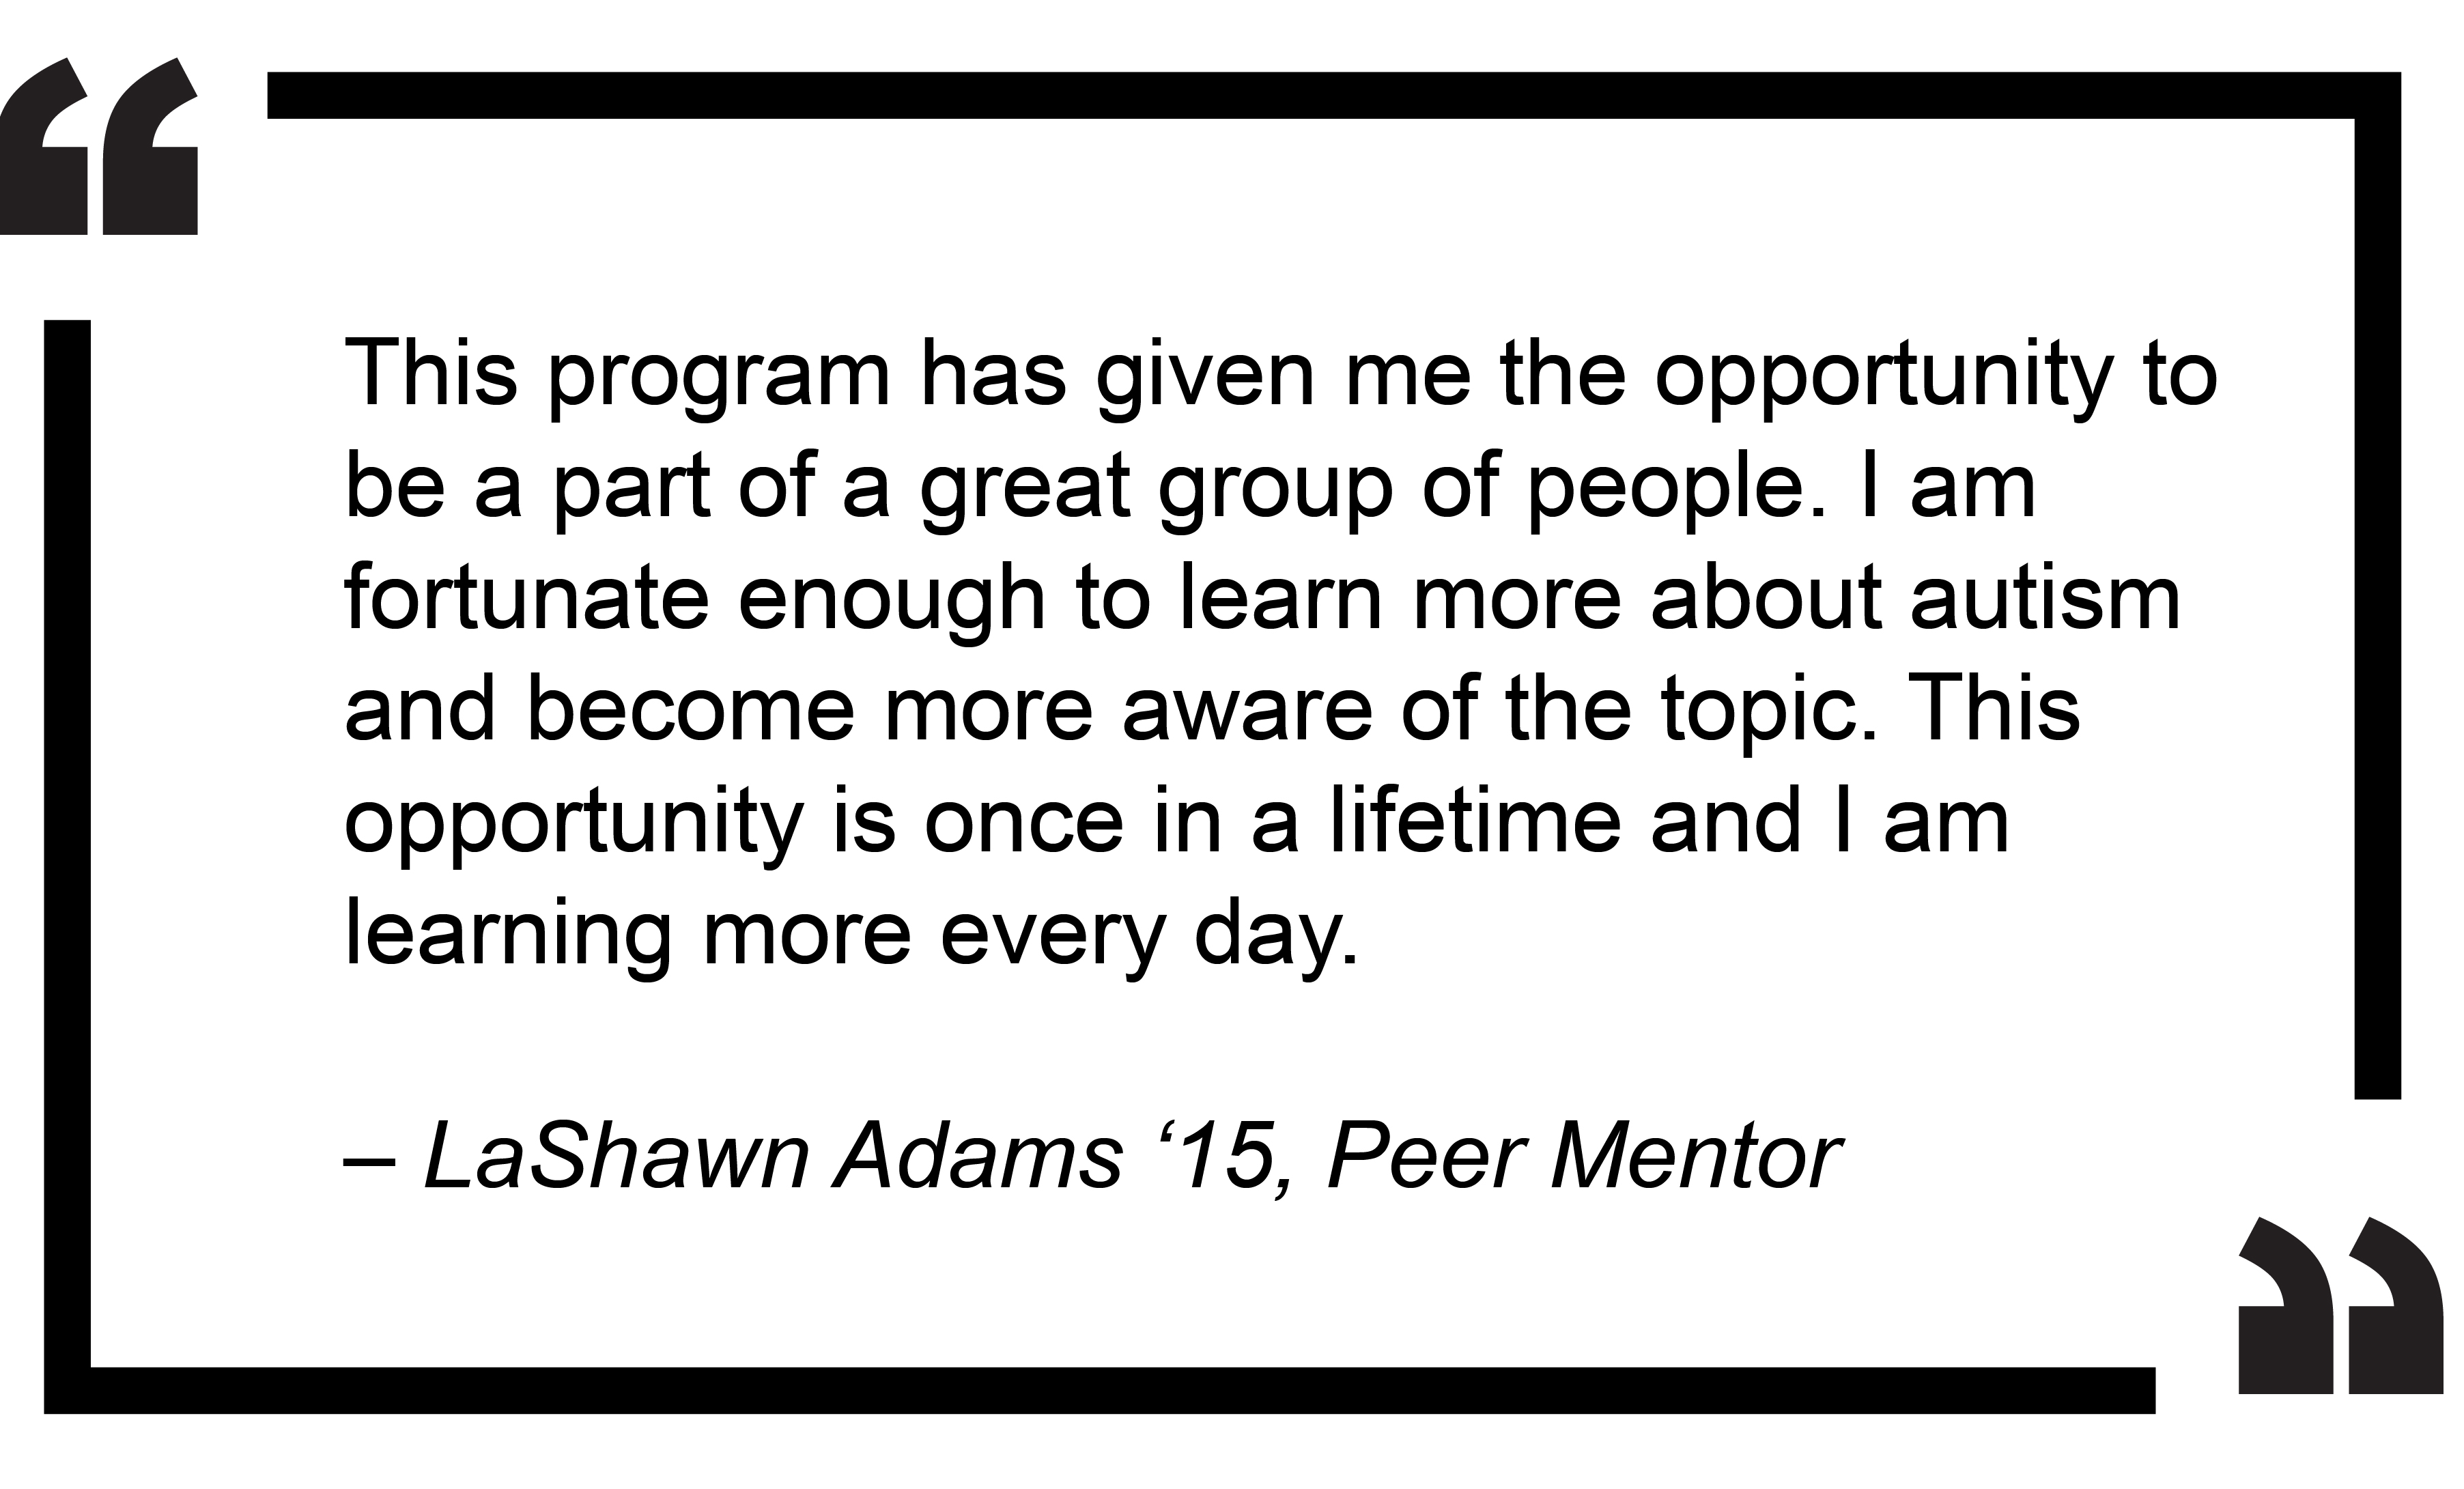 """This program has given me the opportunity to be a part of a great group of people. I am fortunate enough to learn more about autism and become more aware of the topic. This opportunity is once in a lifetime and I am learning more every day."" - LaShawn Adams '15, Peer Mentor"